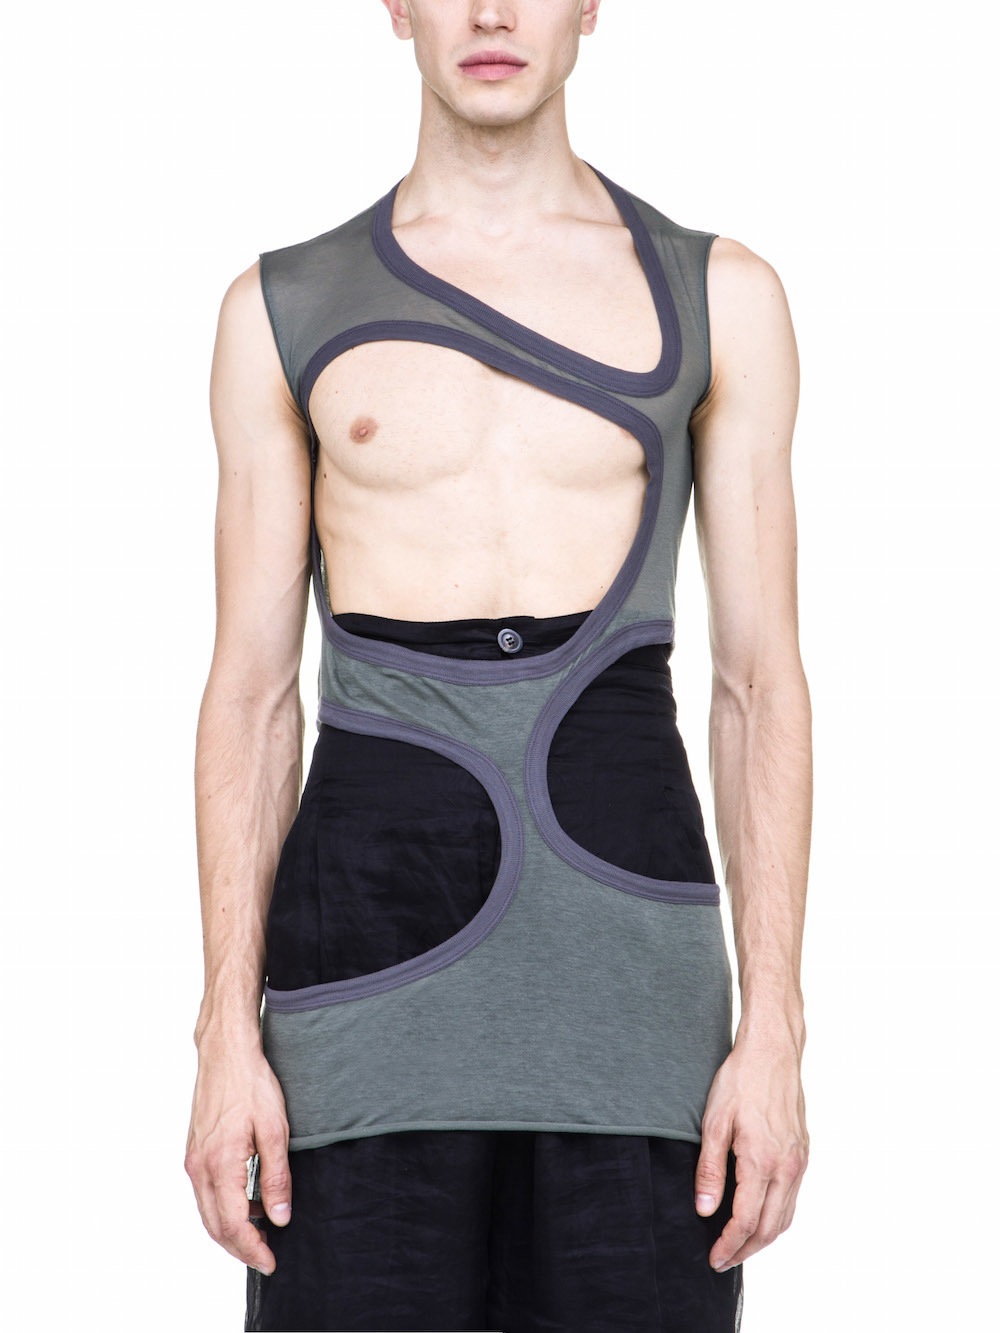 RICK OWENS OFF-THE-RUNWAY MEMBRANE III TOP IN SAGE GREEN